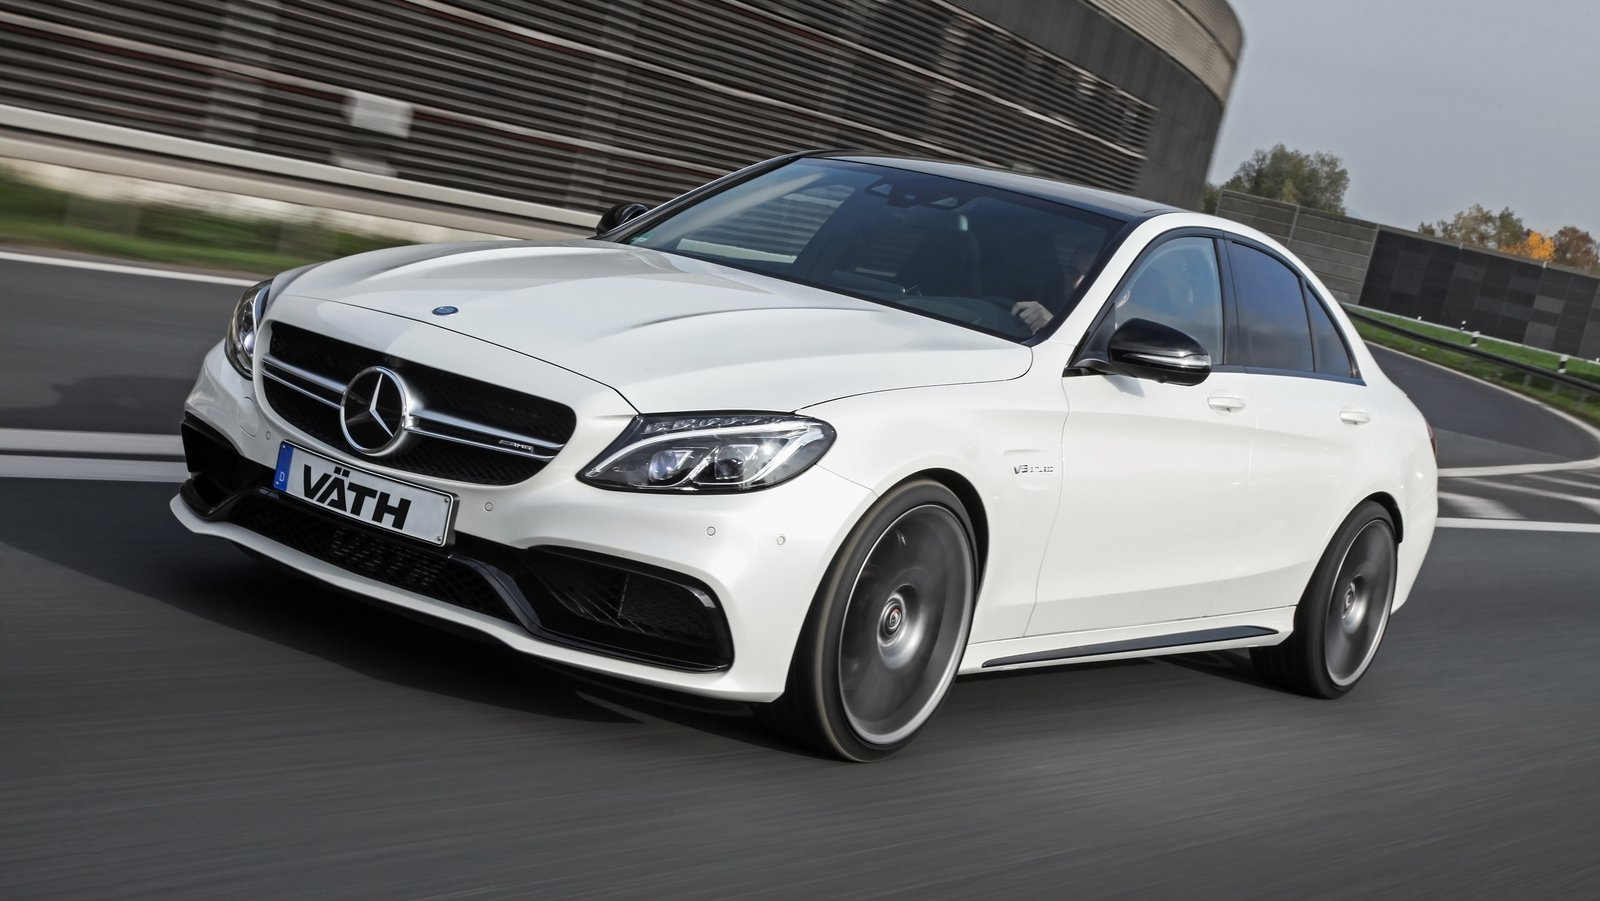 2016 mercedes amg c 63 by vath pictures photos wallpapers top speed. Black Bedroom Furniture Sets. Home Design Ideas